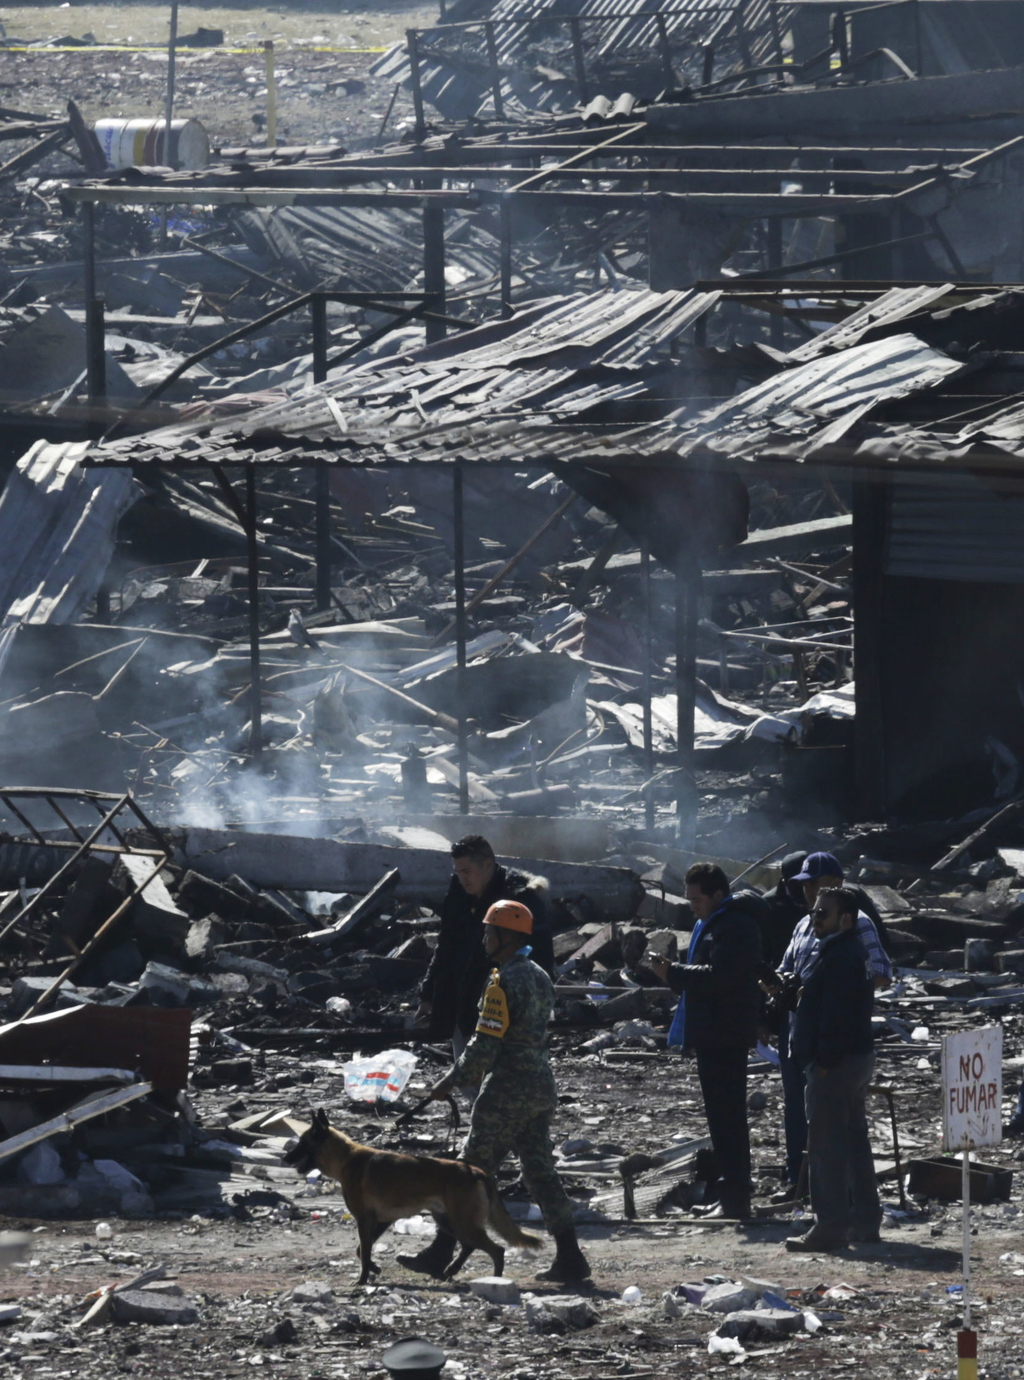 Soldiers and investigators walk through the scorched rubble of the open-air San Pablito fireworks market that exploded in Tultepec on t...